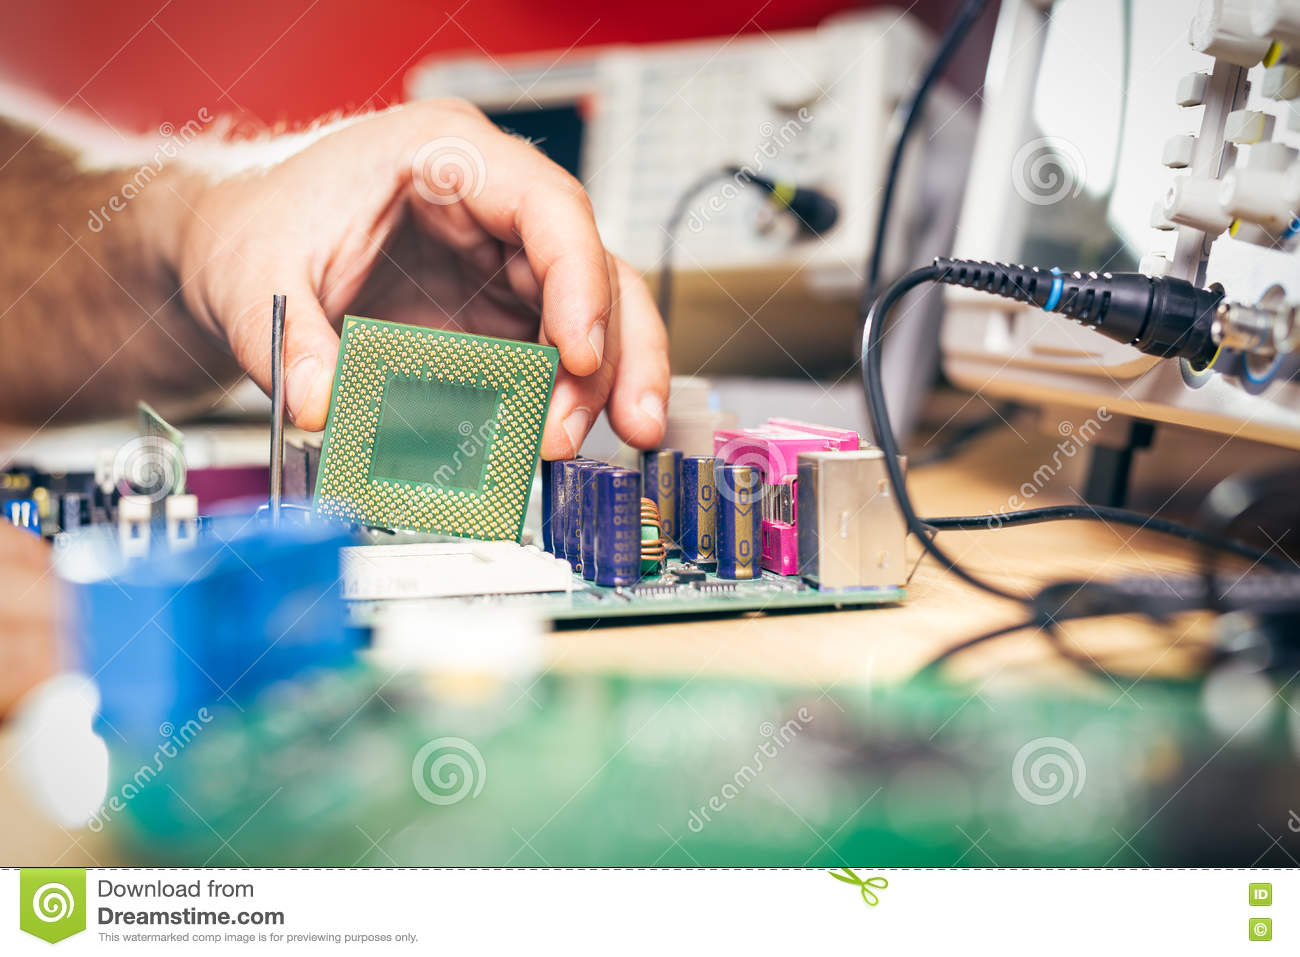 Remove Cpu From Main Circuit Board To Check Problem And Repair Stock How A